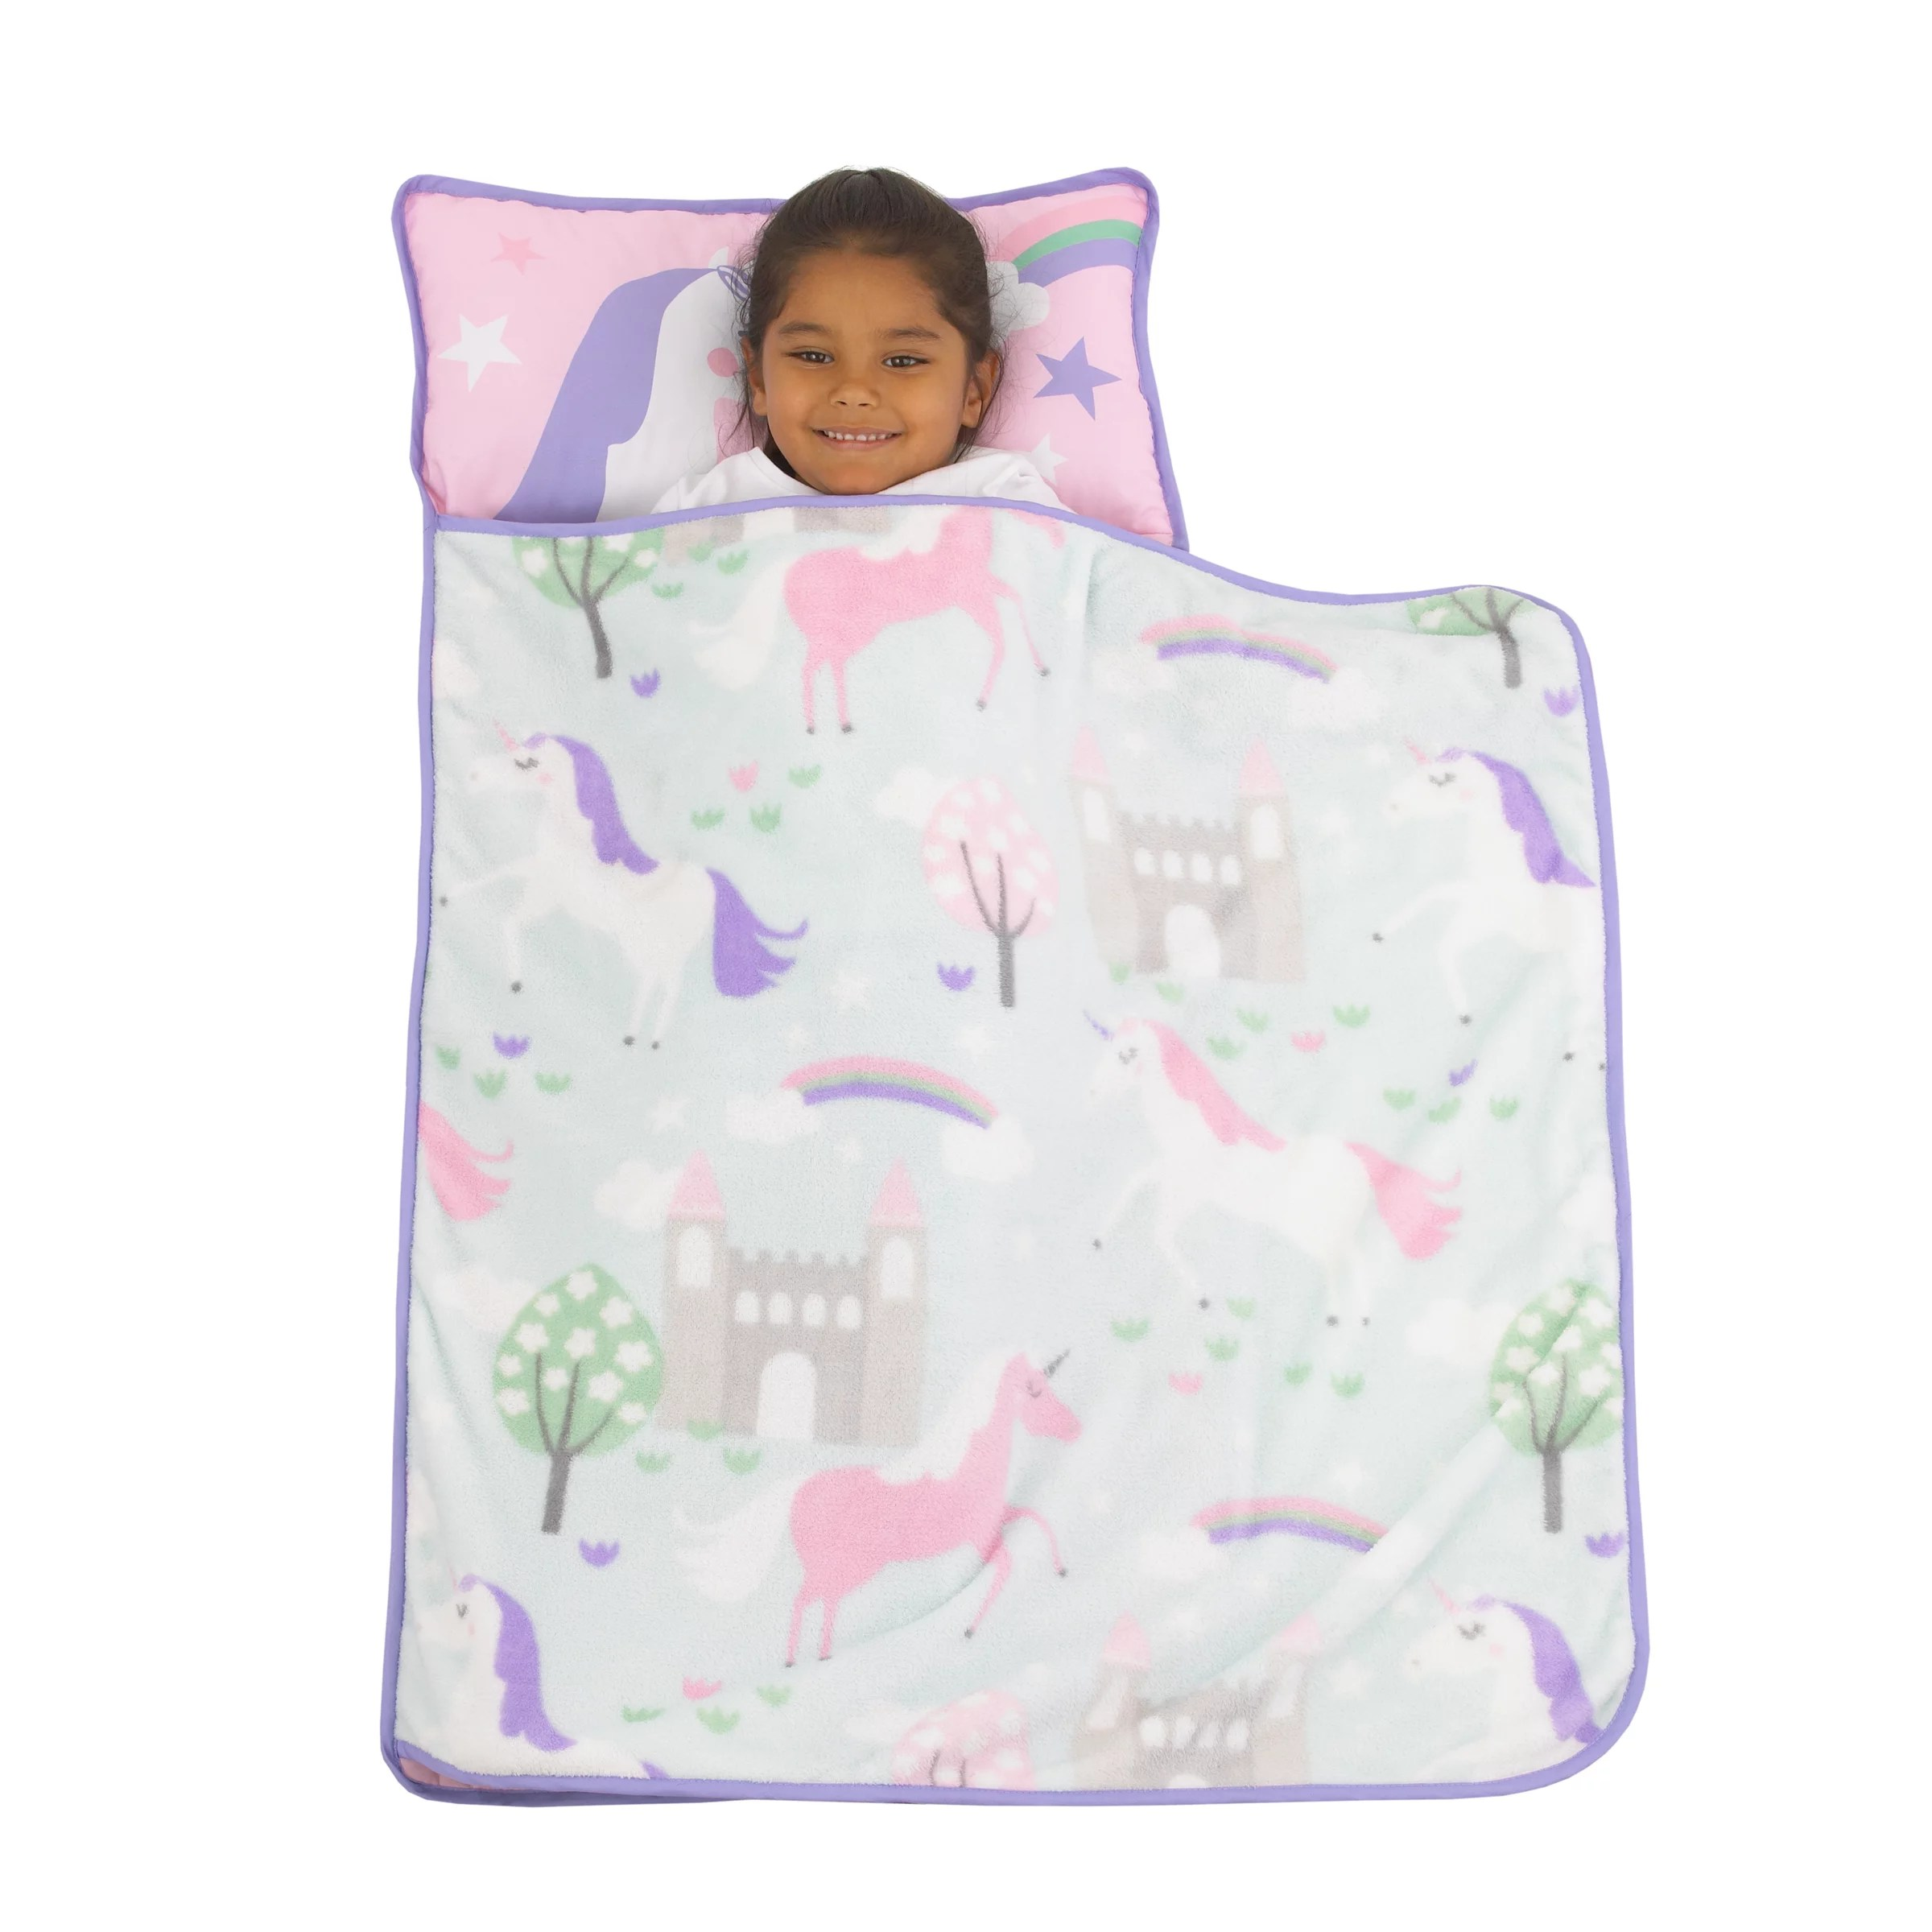 everything kids pink unicorn toddler nap mat with pillow and blanket walmart com